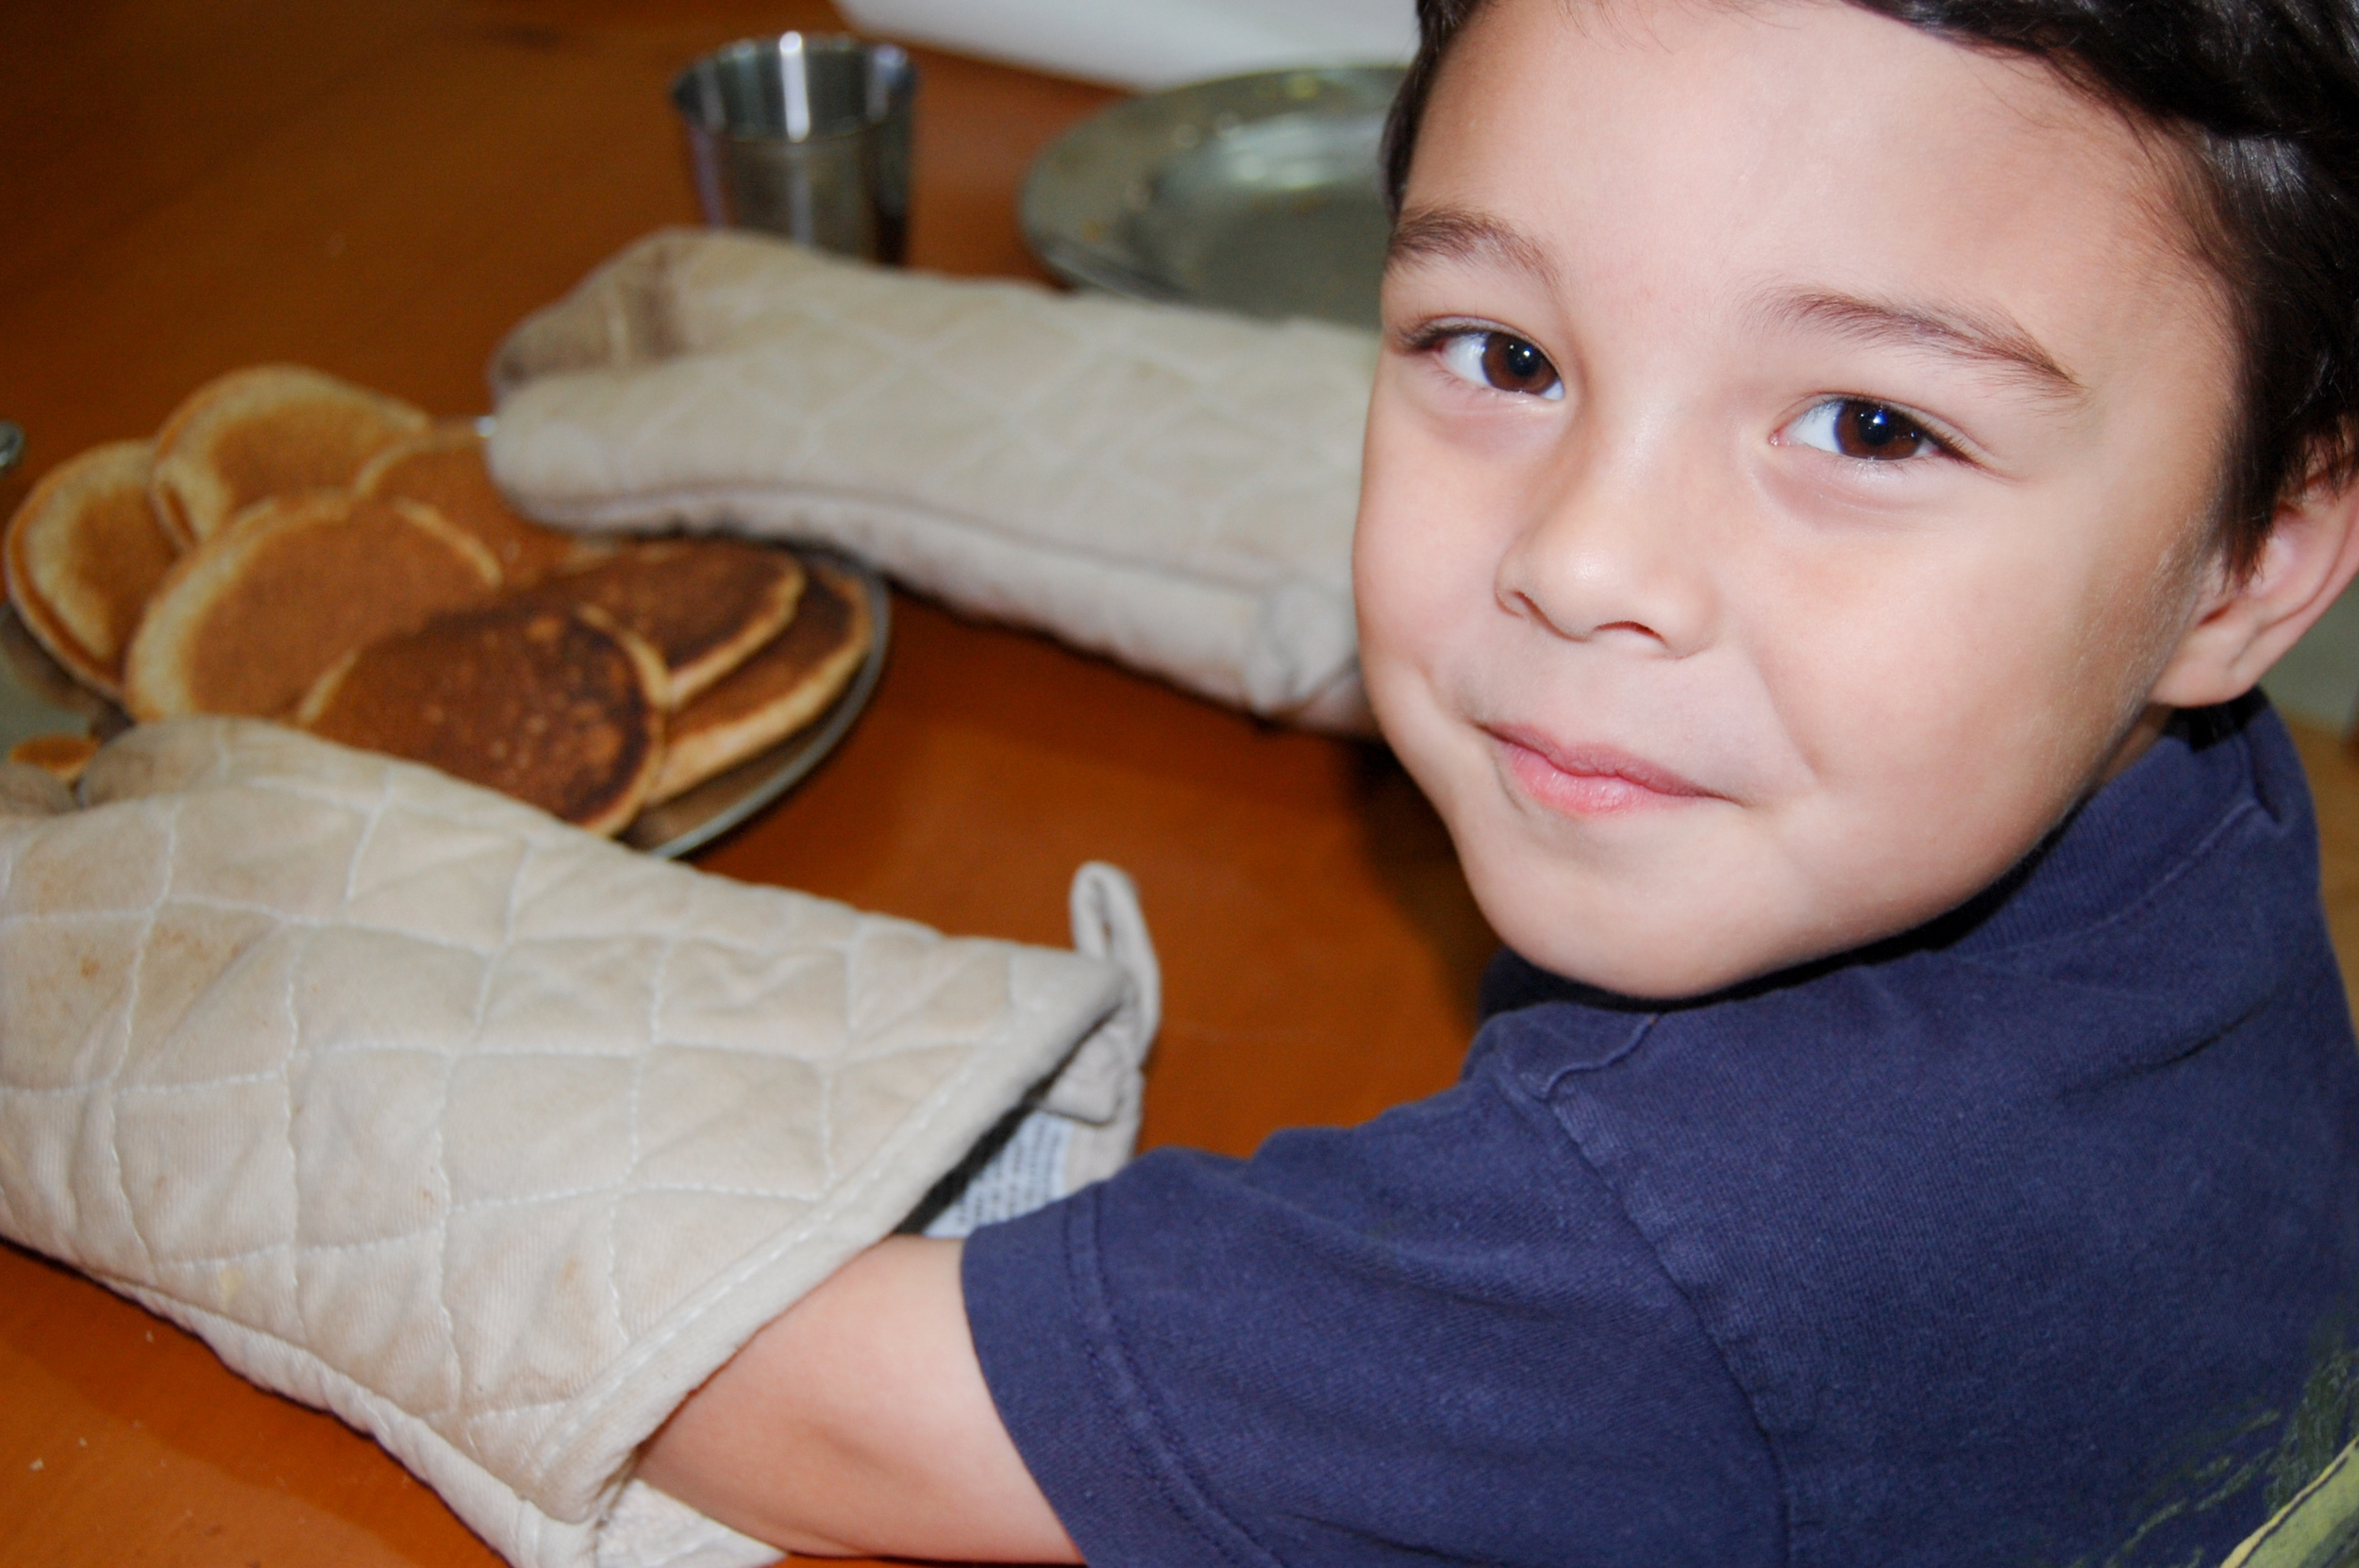 2012  - Abraham (4) serves homemade organic pancakes from the flour we milled with our mill. I believe I had him help me flip the miniature pancakes in our cast iron skillets.